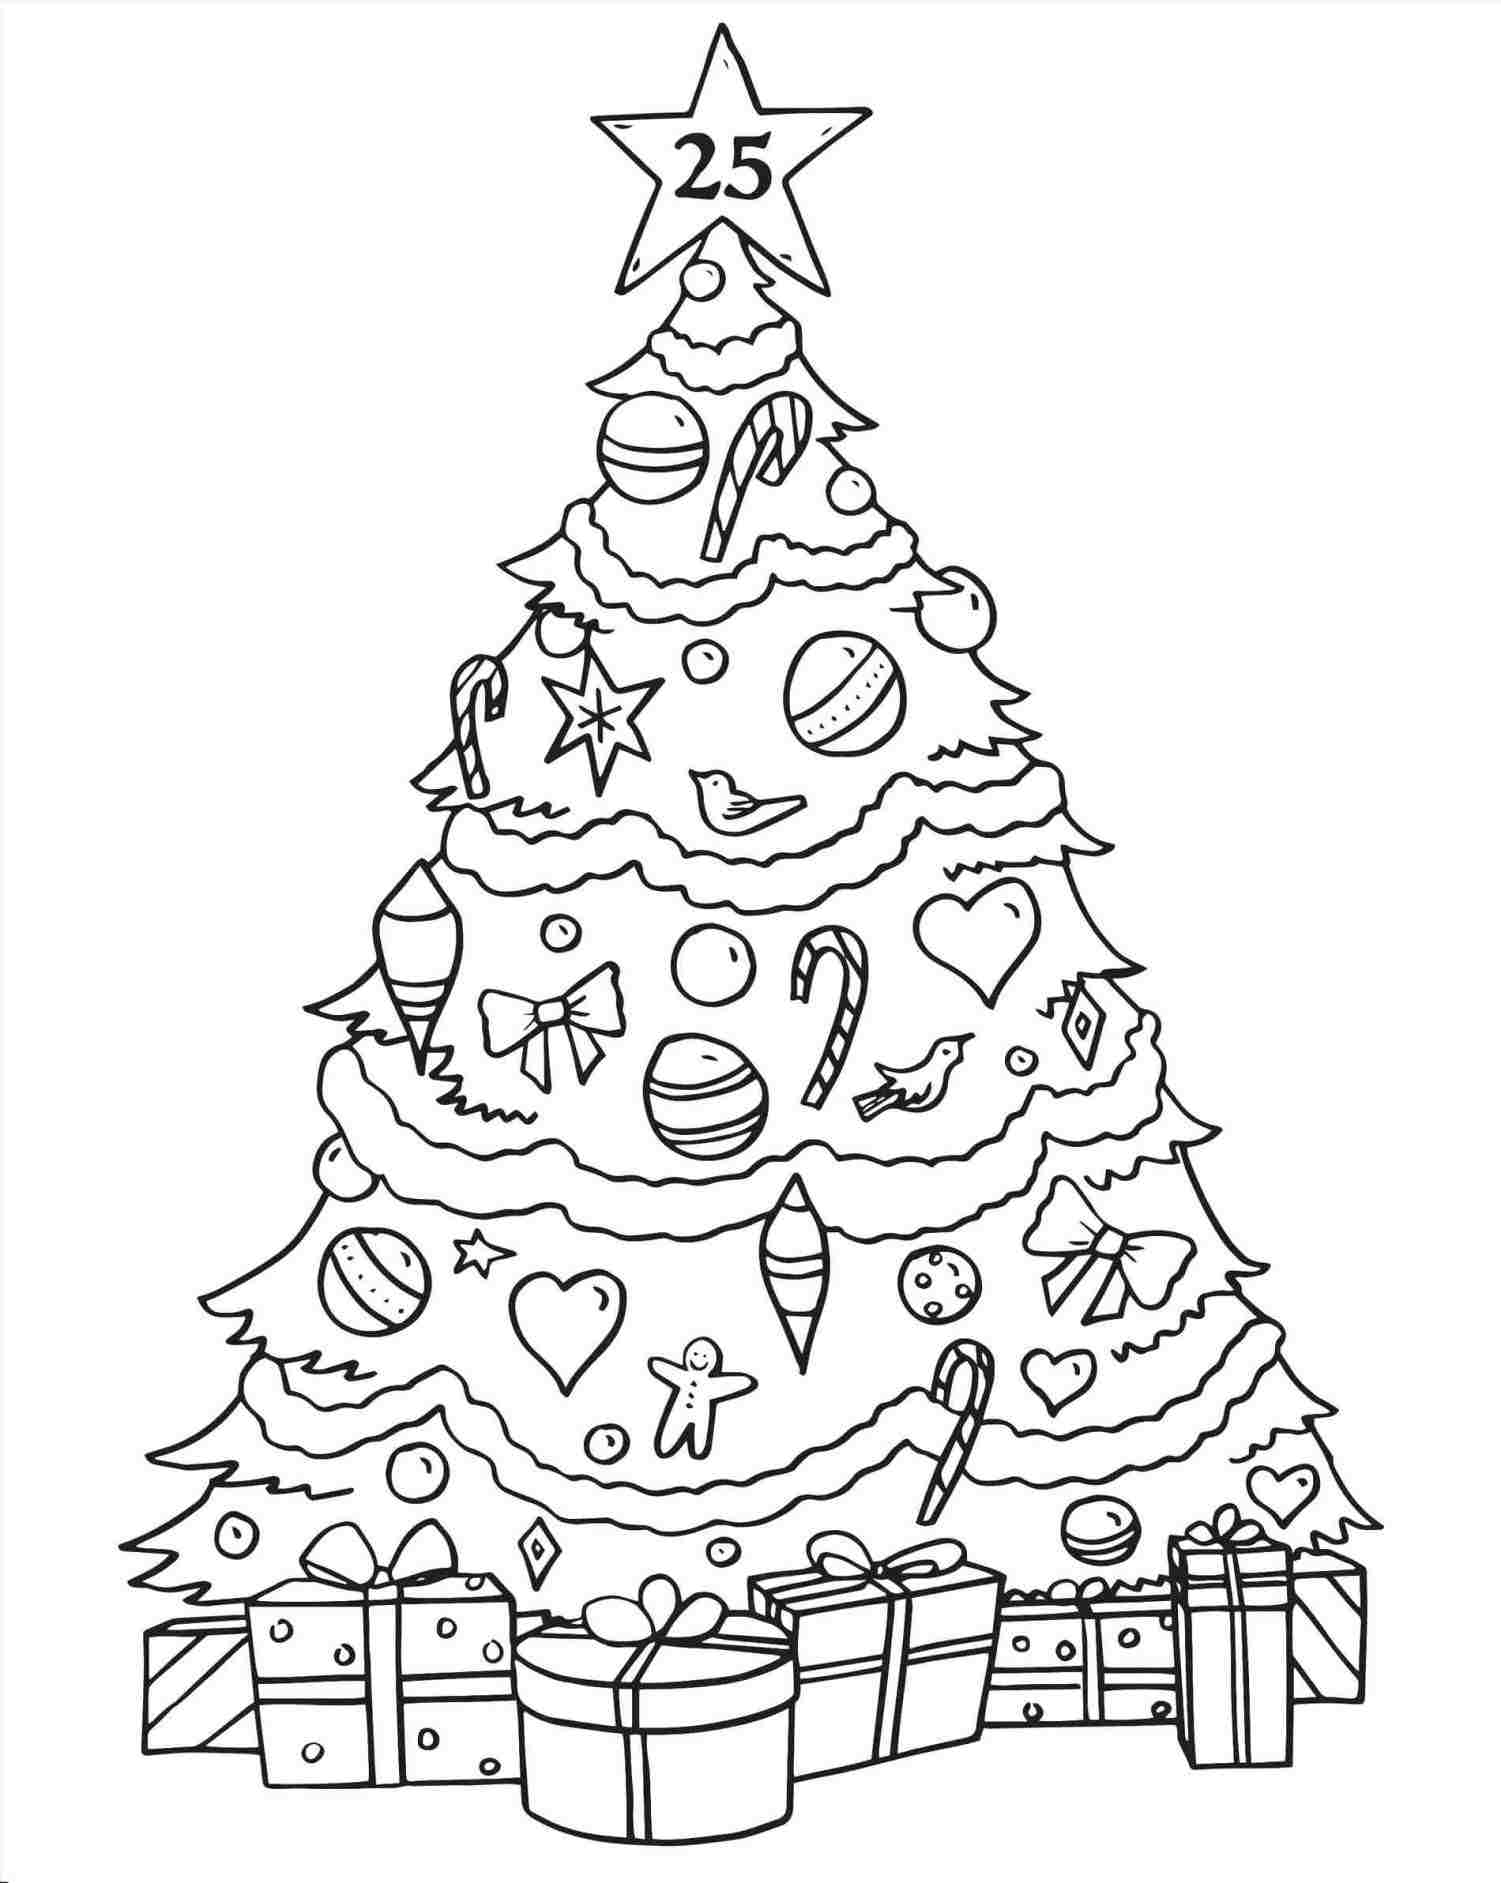 Big Christmas Tree Coloring Pages Printable With Black And White Card Line Rhpinterestcom